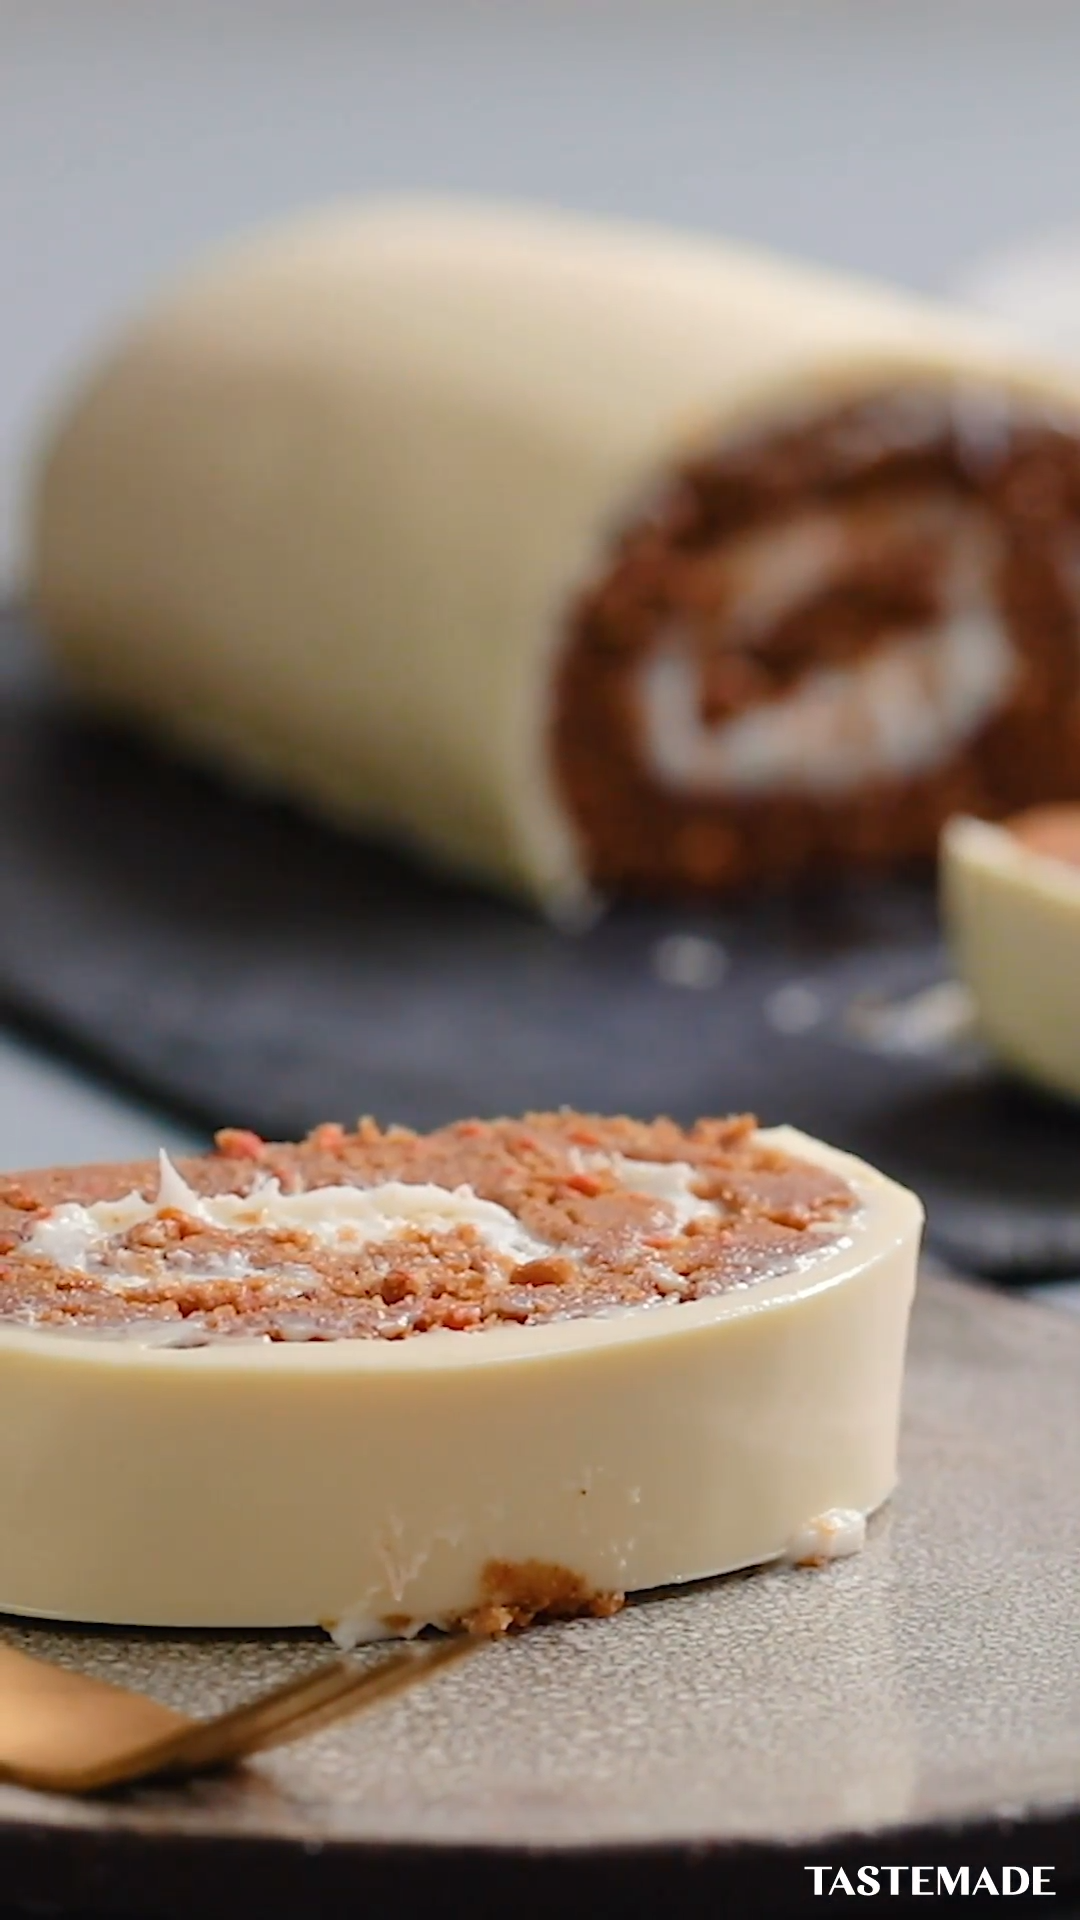 Carrot Cake Roll Food Debate: Is this carrot cake